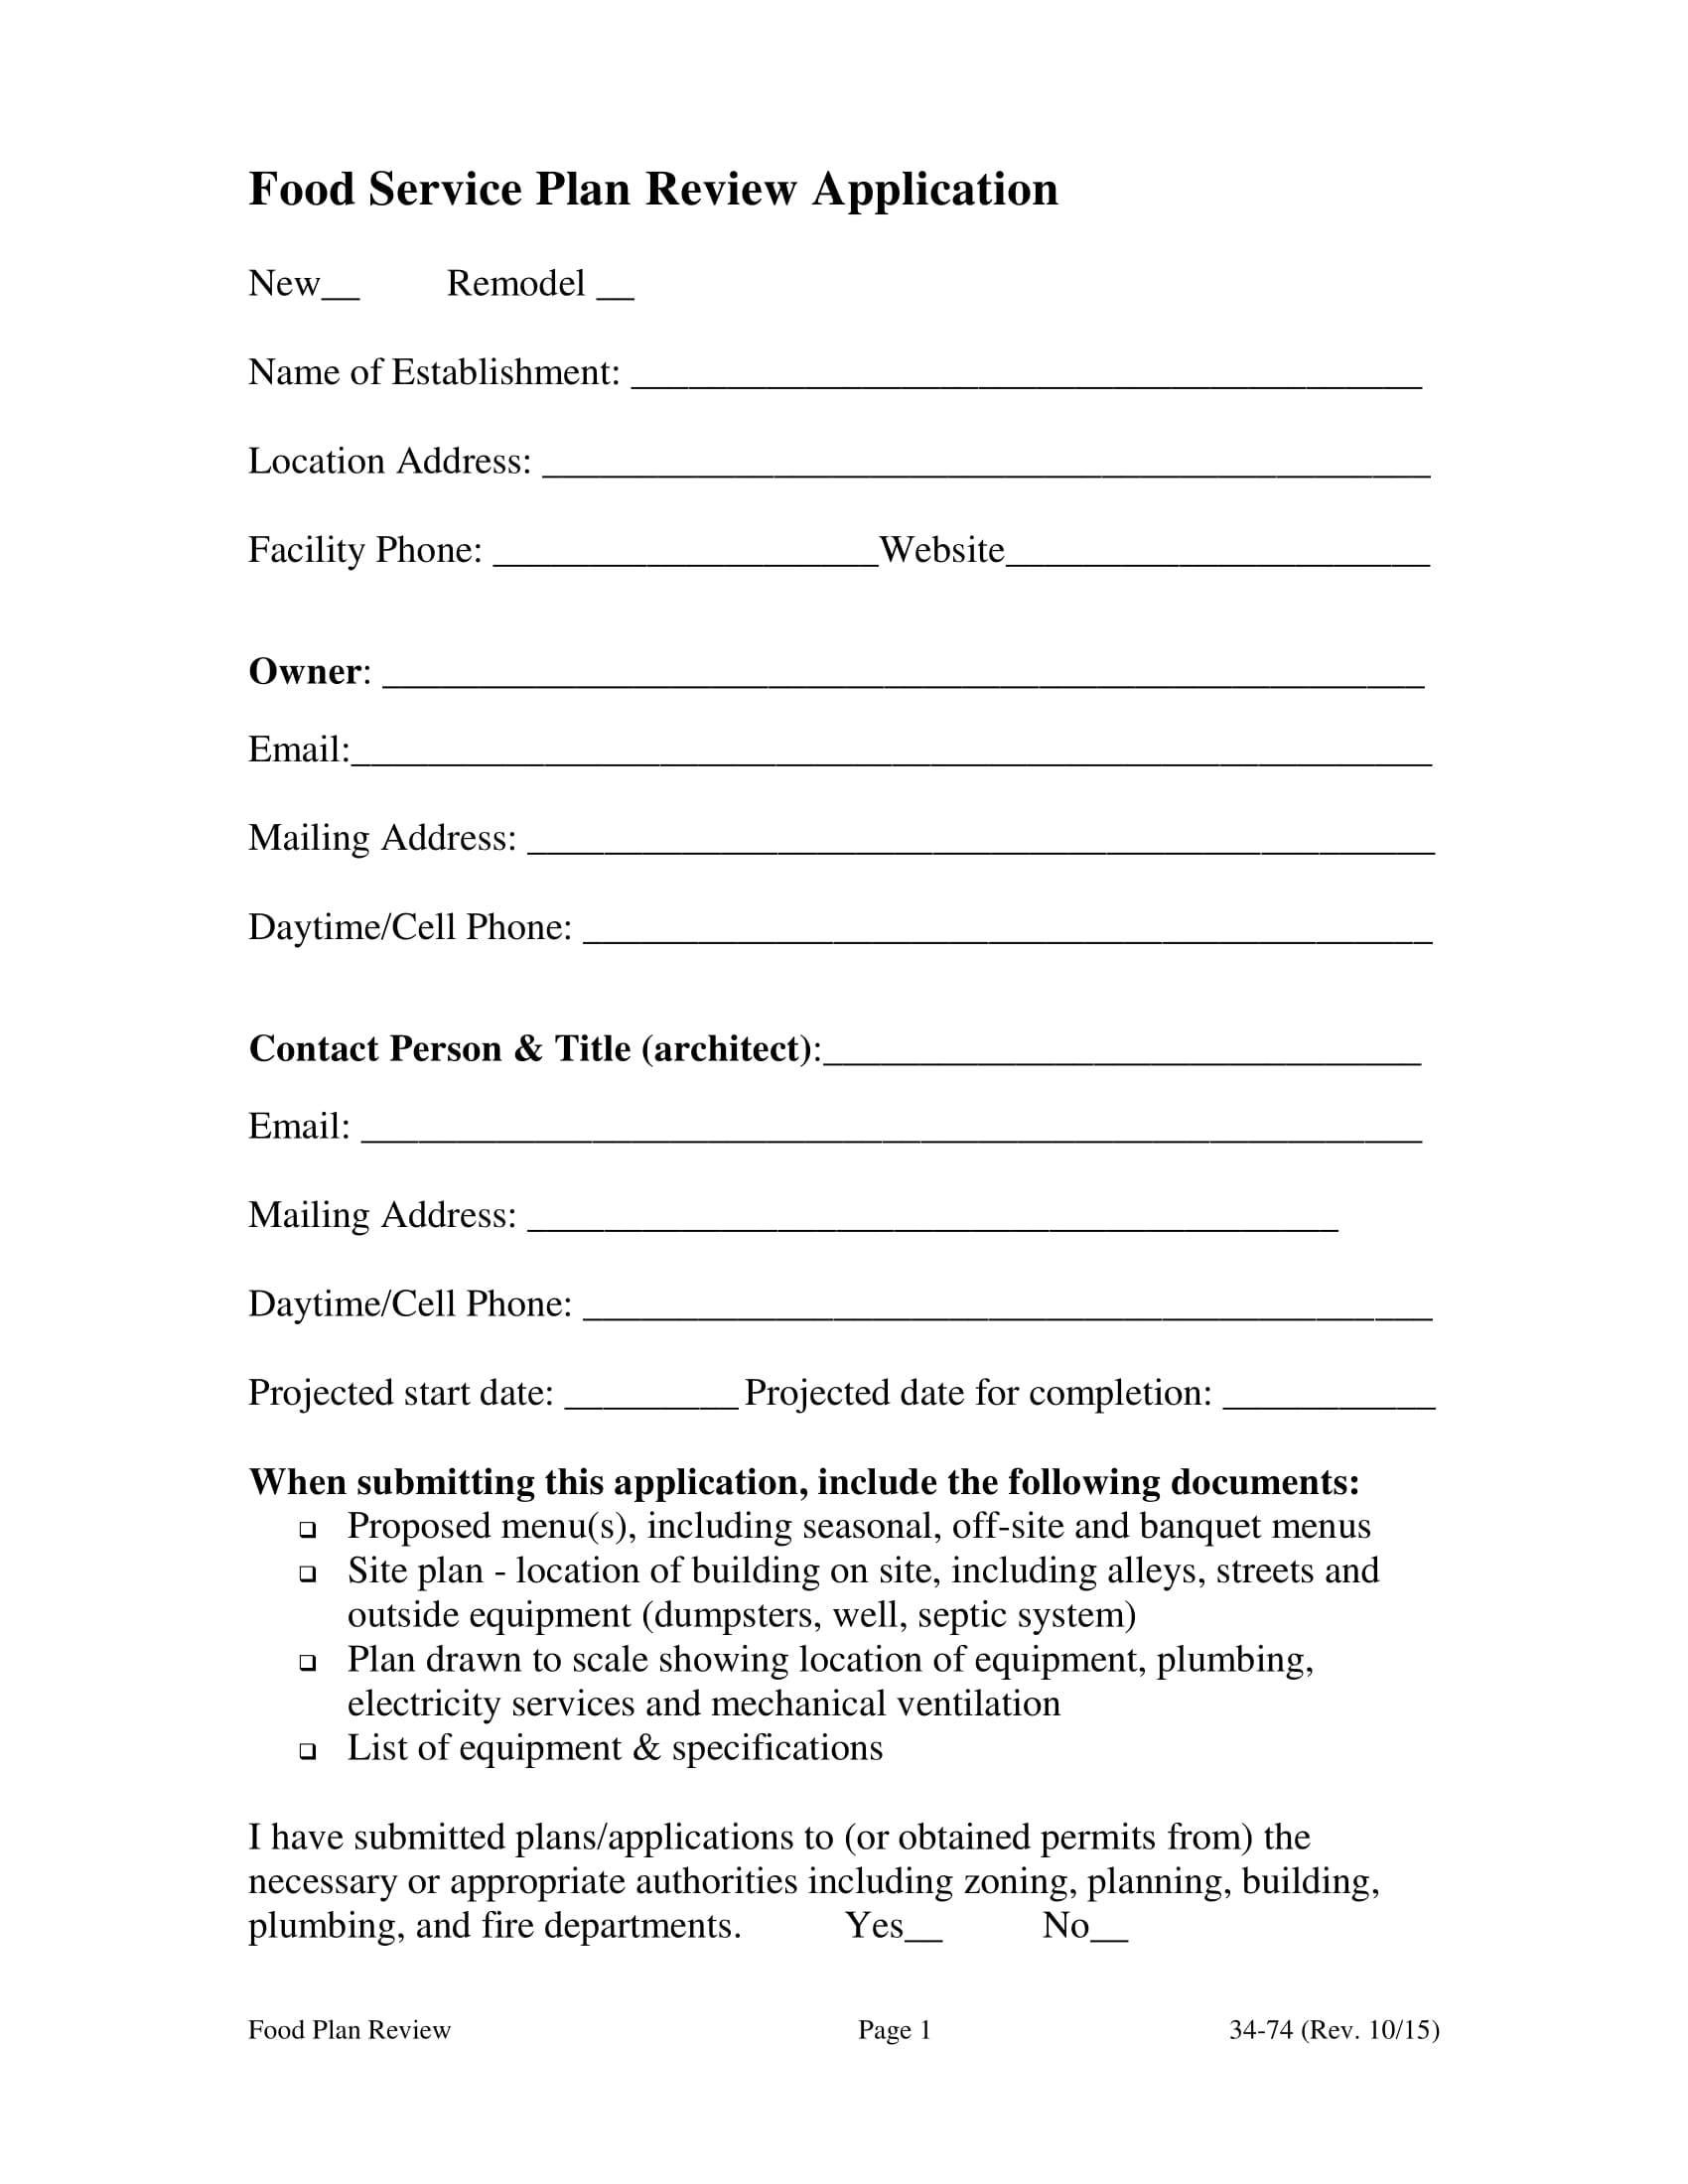 food service plan review application 01